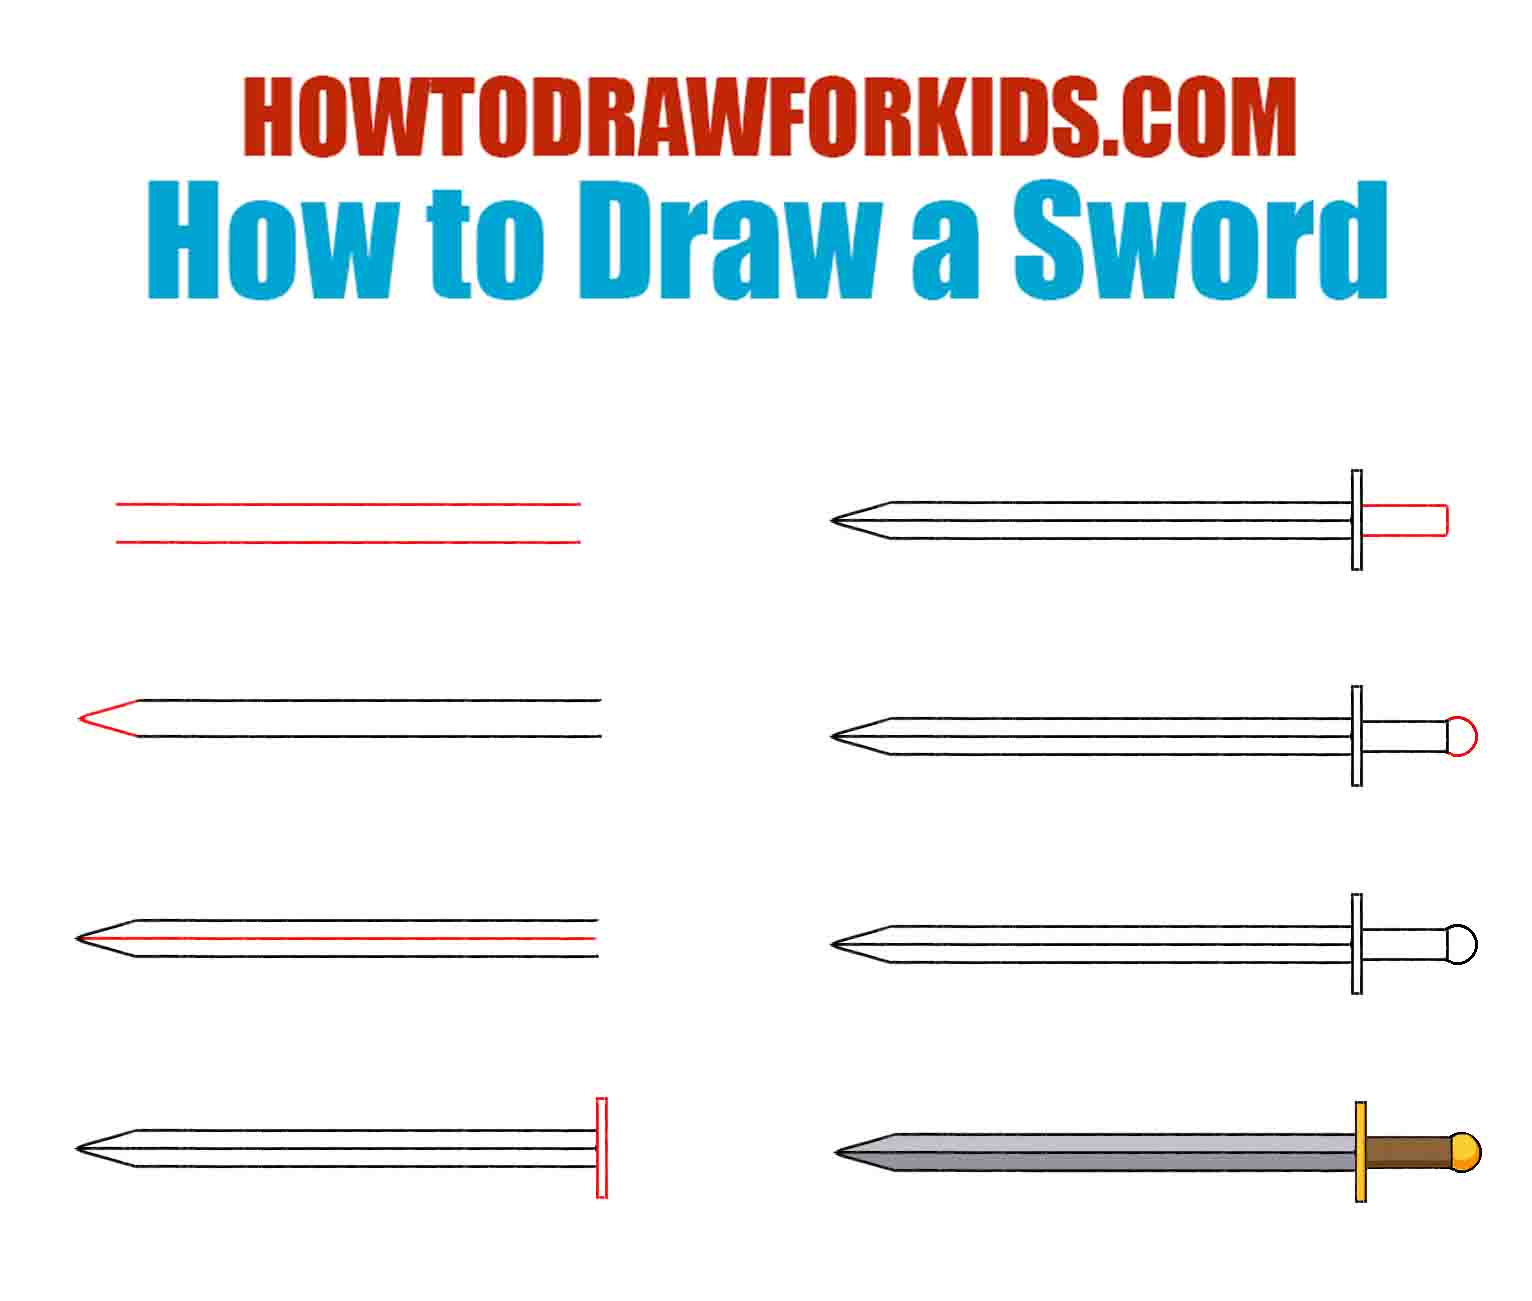 How to Draw a Sword for Kids